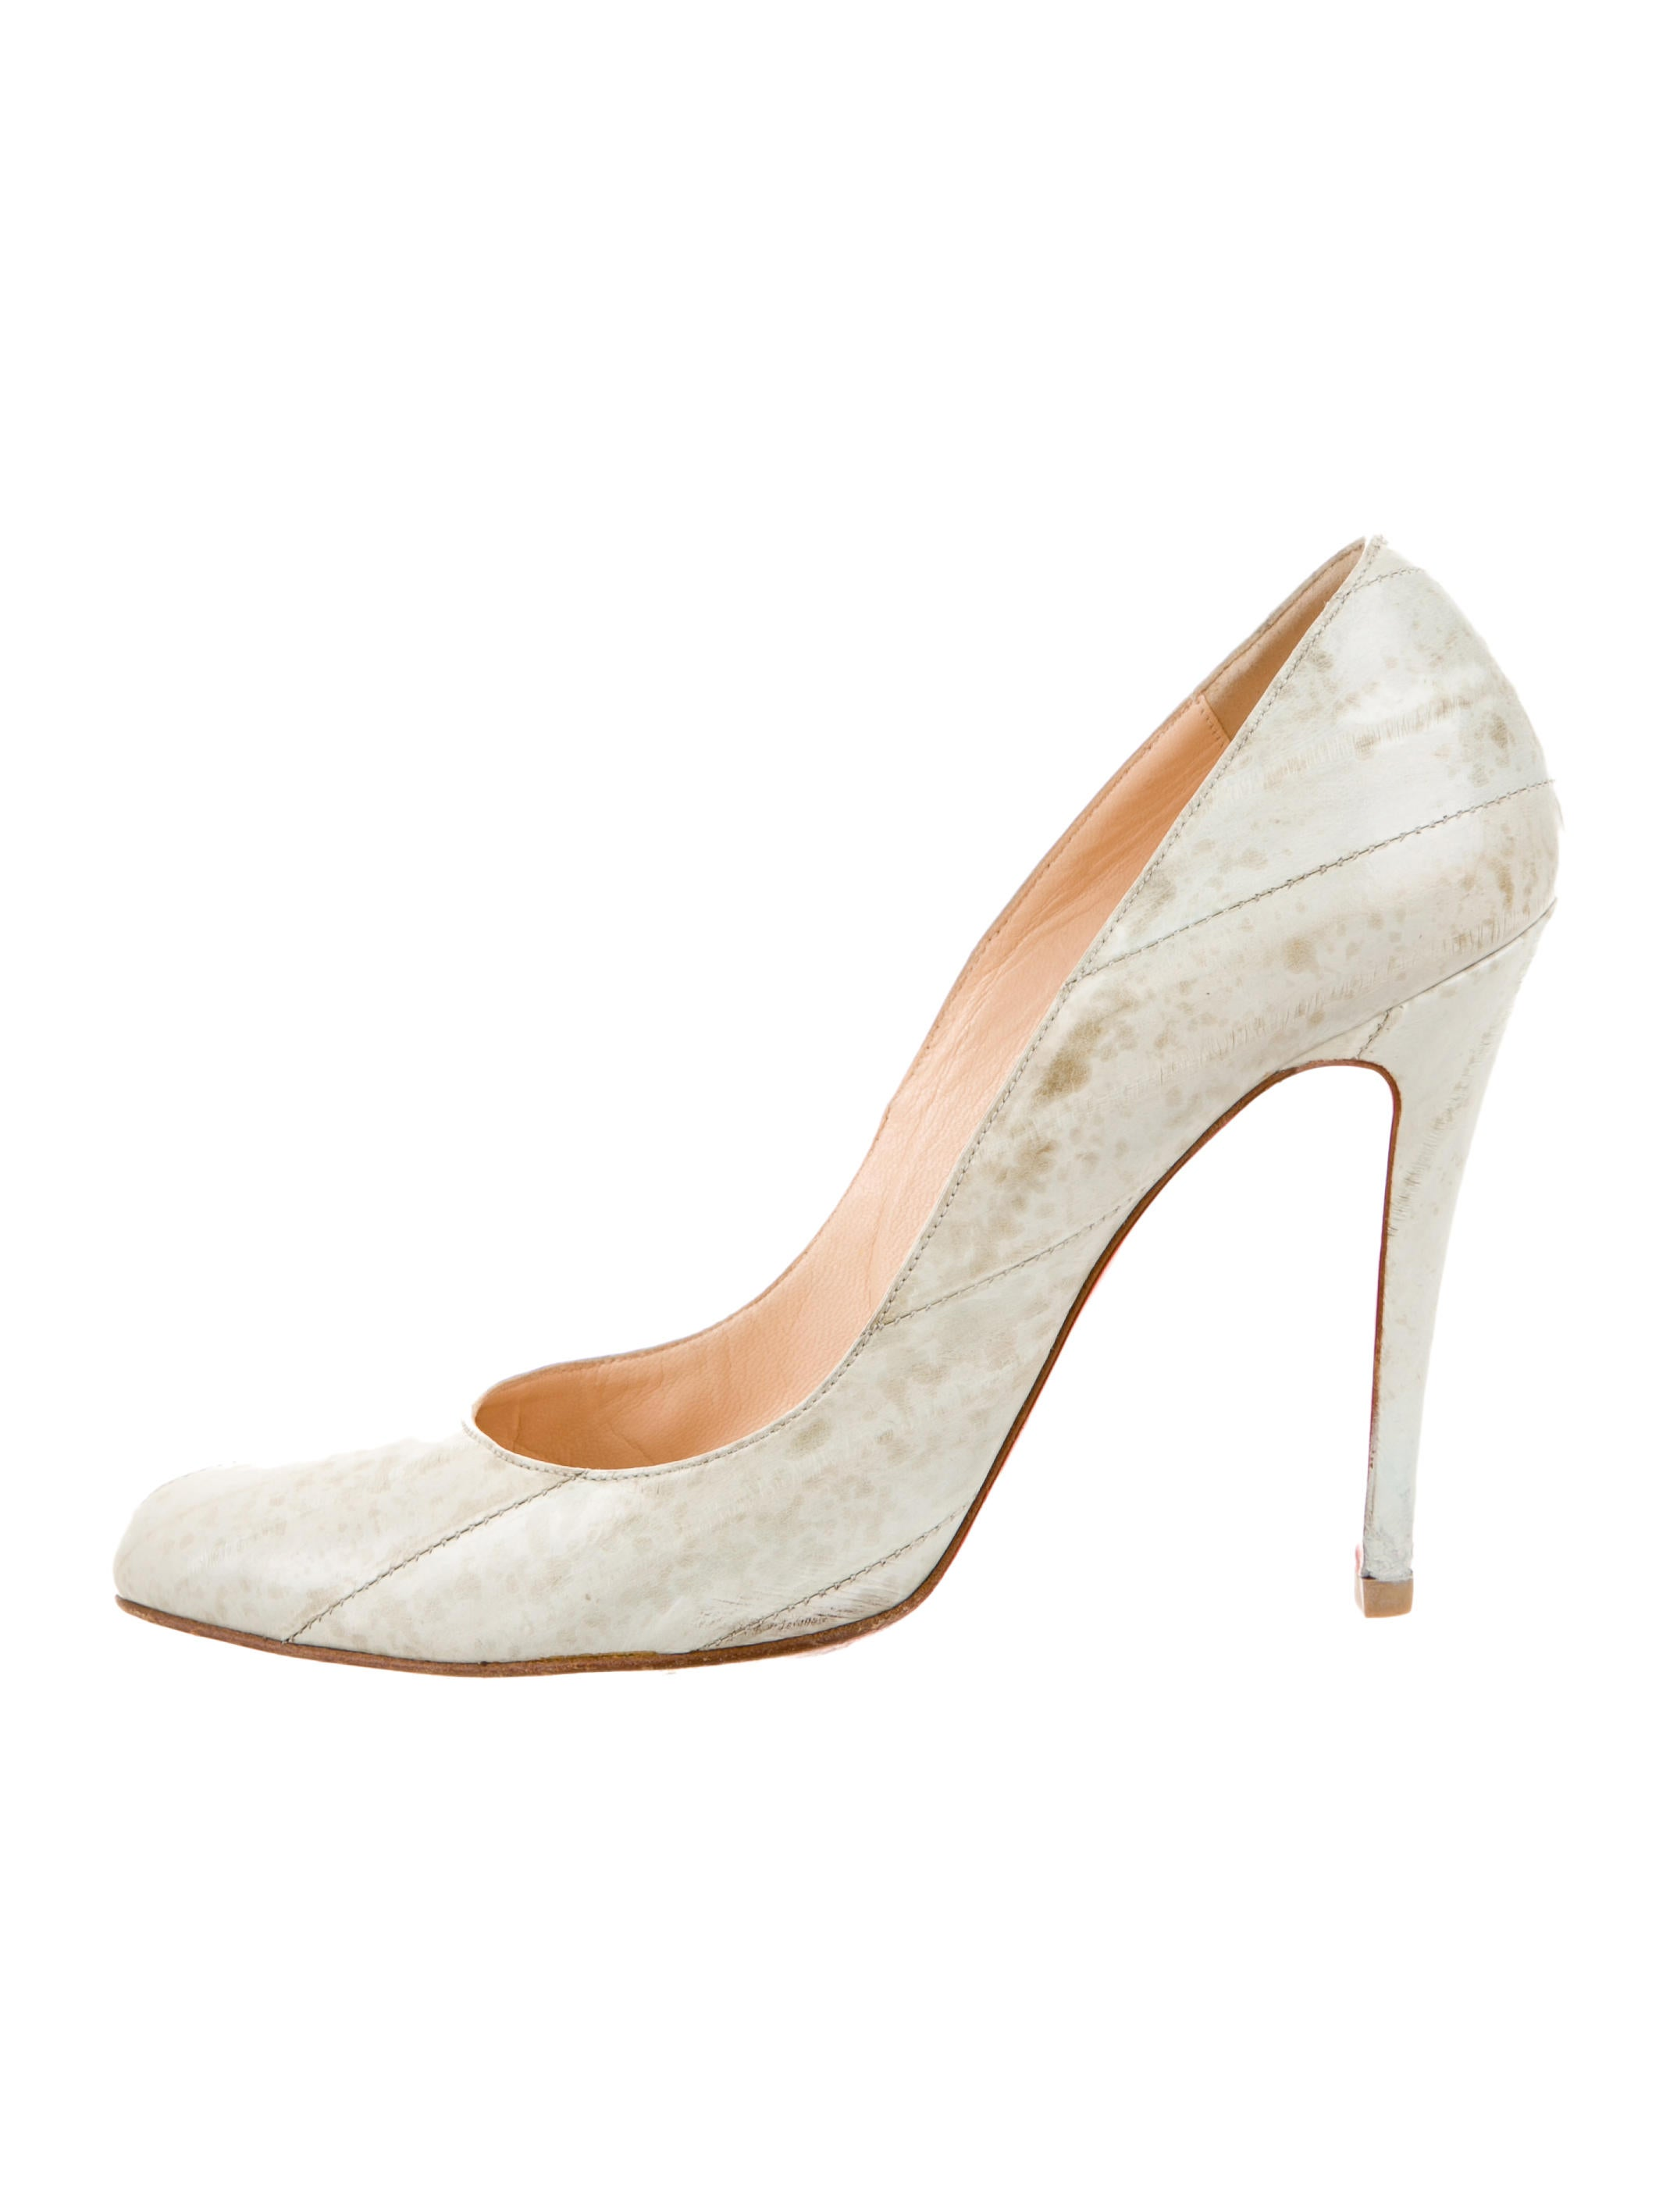 Christian Louboutin Eel Skin Pumps - Shoes - CHT43713   The RealReal